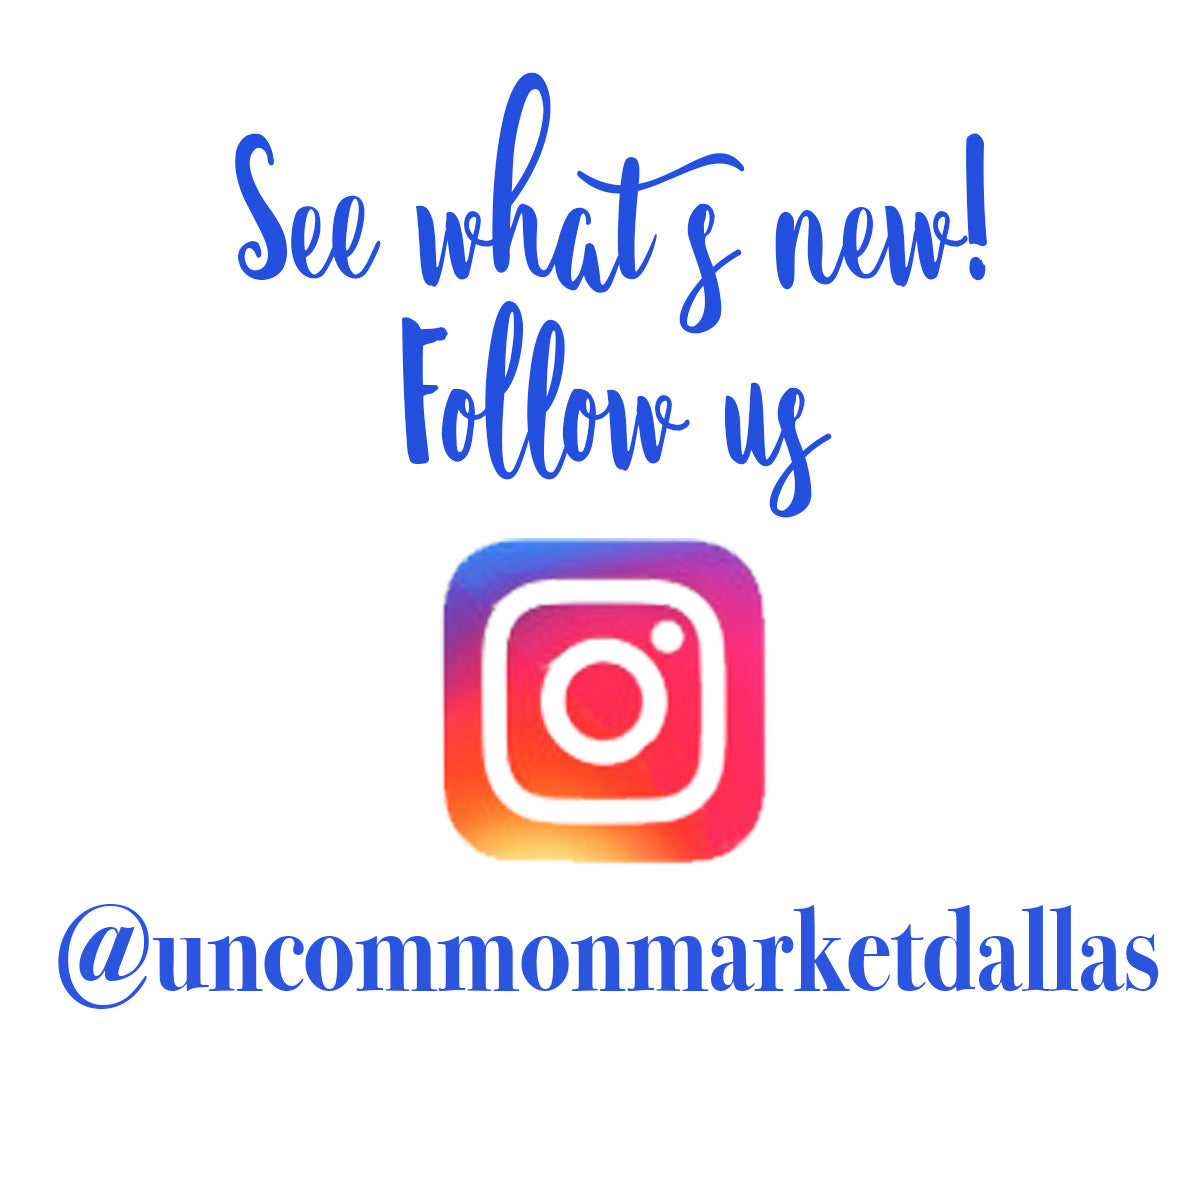 Follow us on Instagram to see what's new!